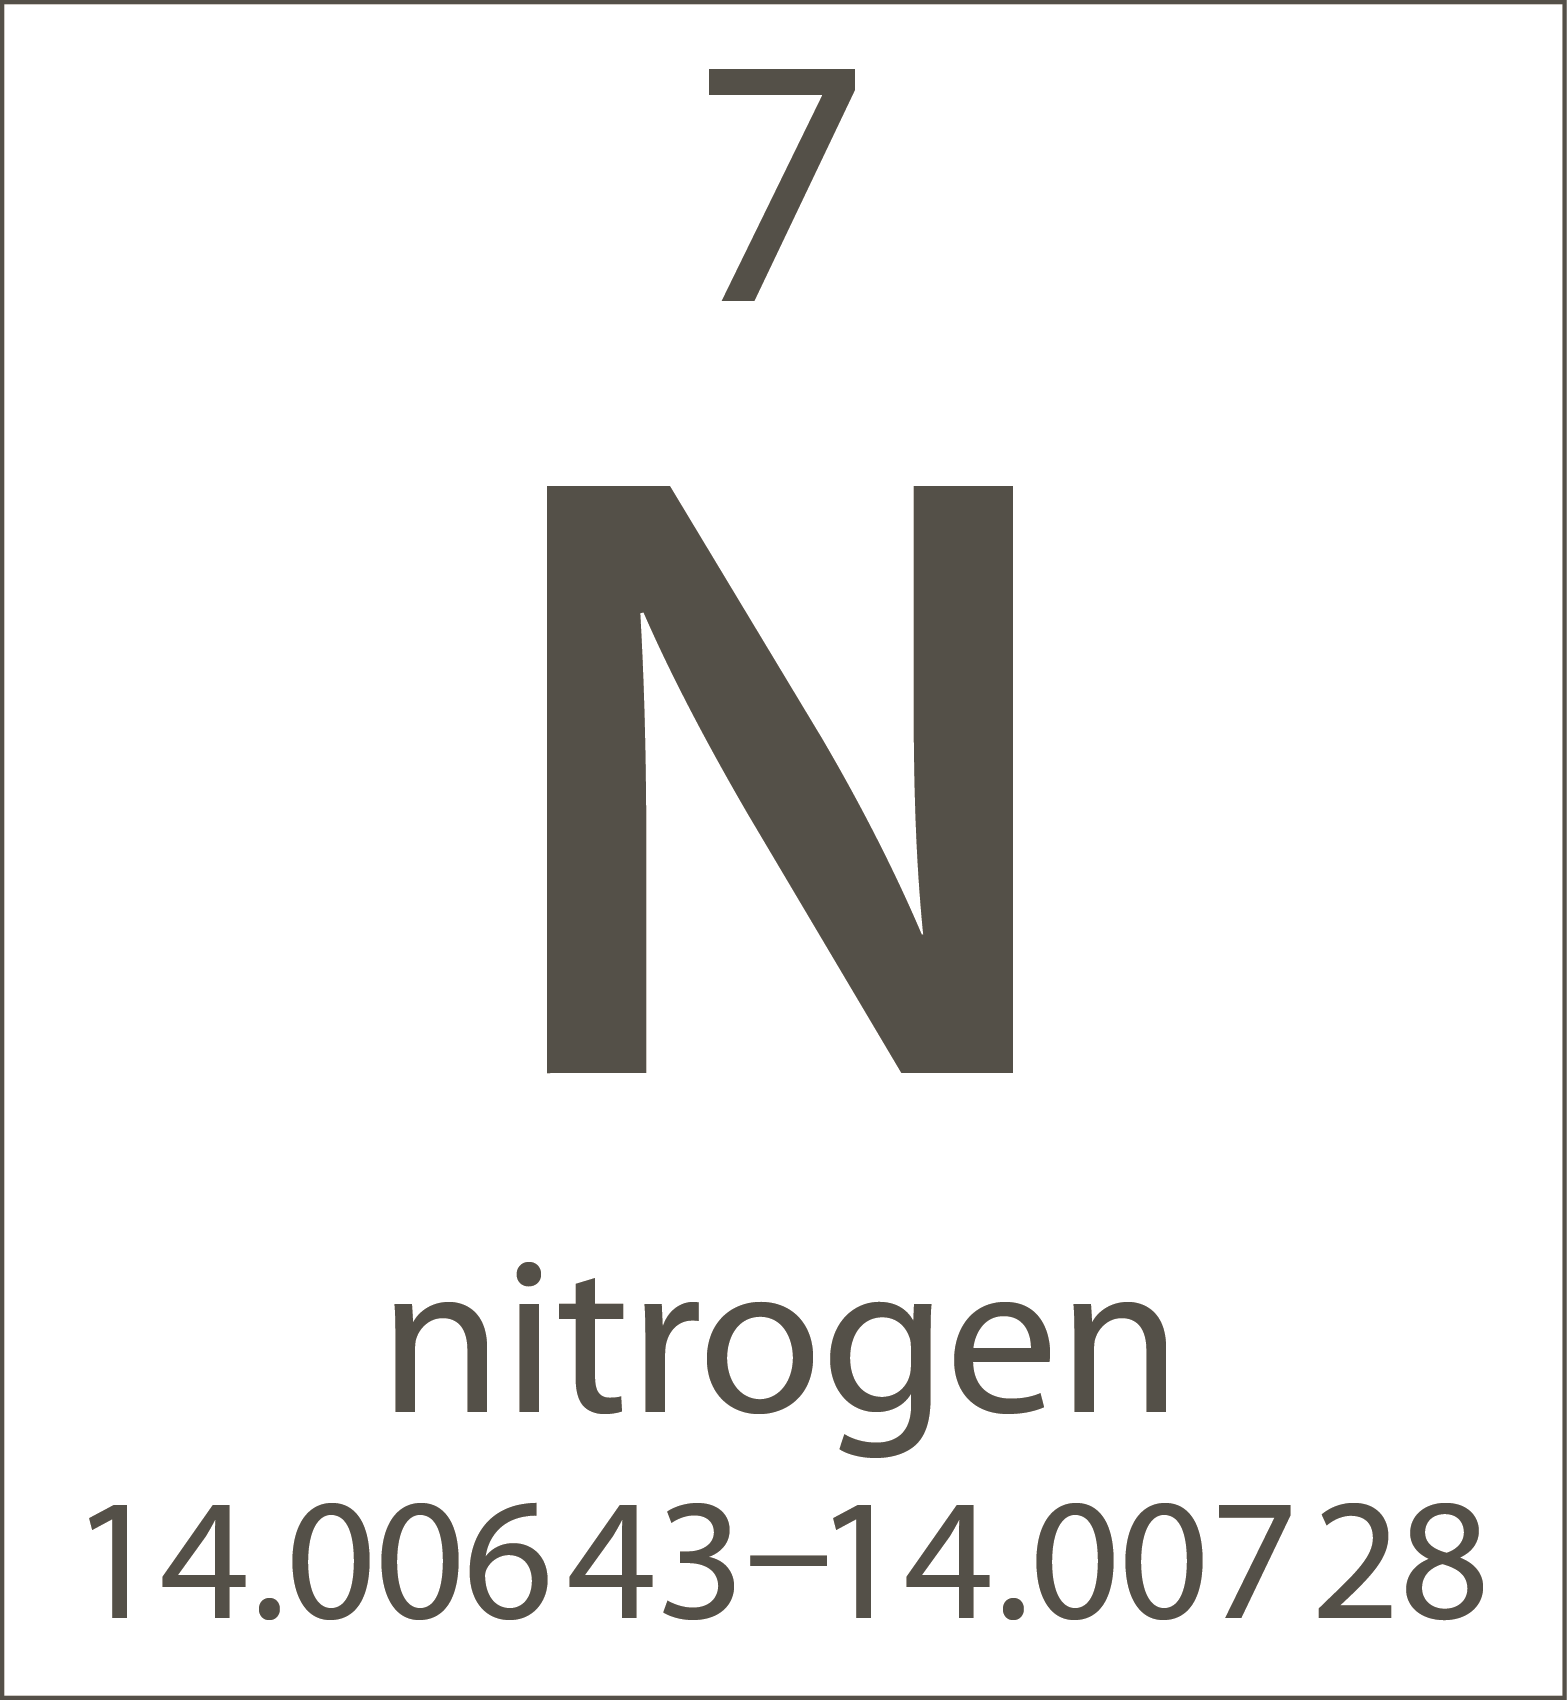 Nitrogen Periodic Table of Elements A Trademark Double Entendre: N2 Versus Into Wines